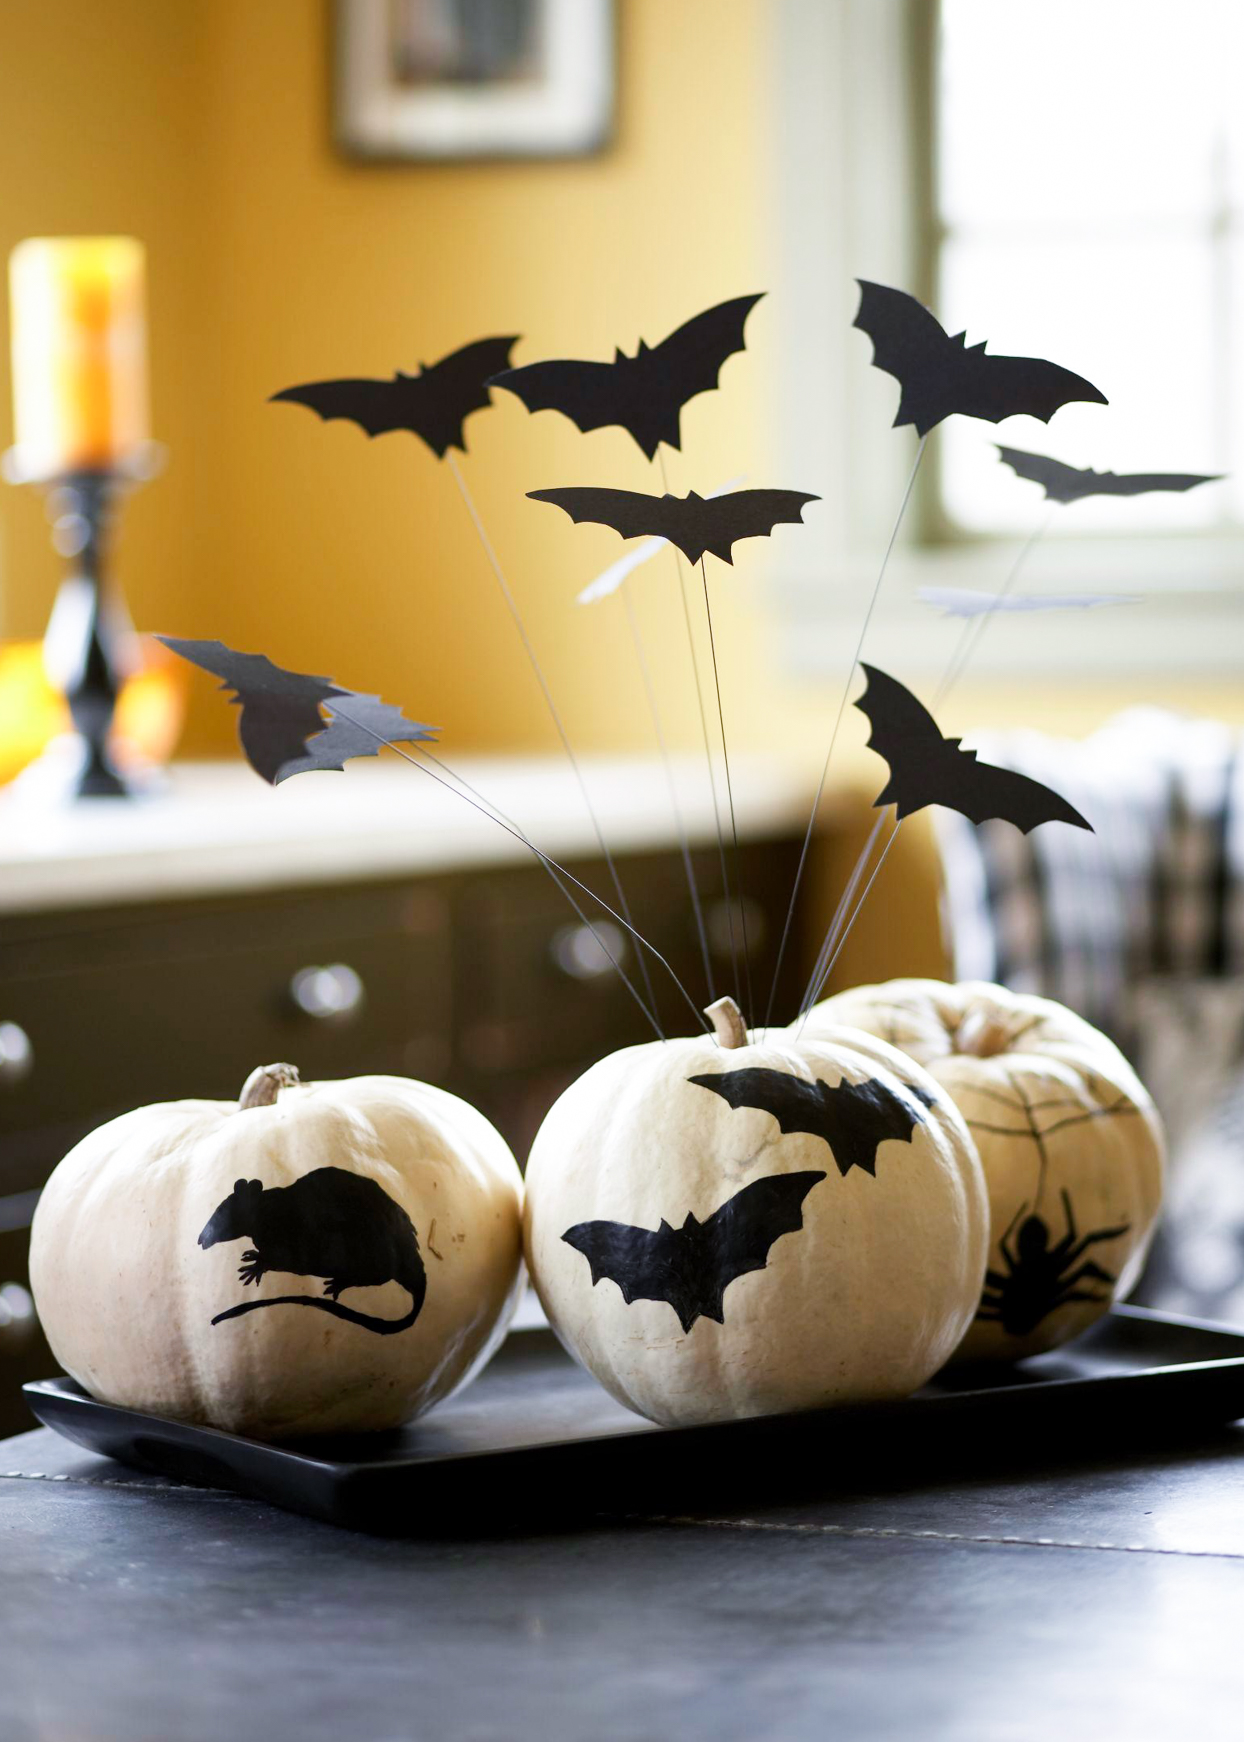 white pumpkins painted with rats and bats